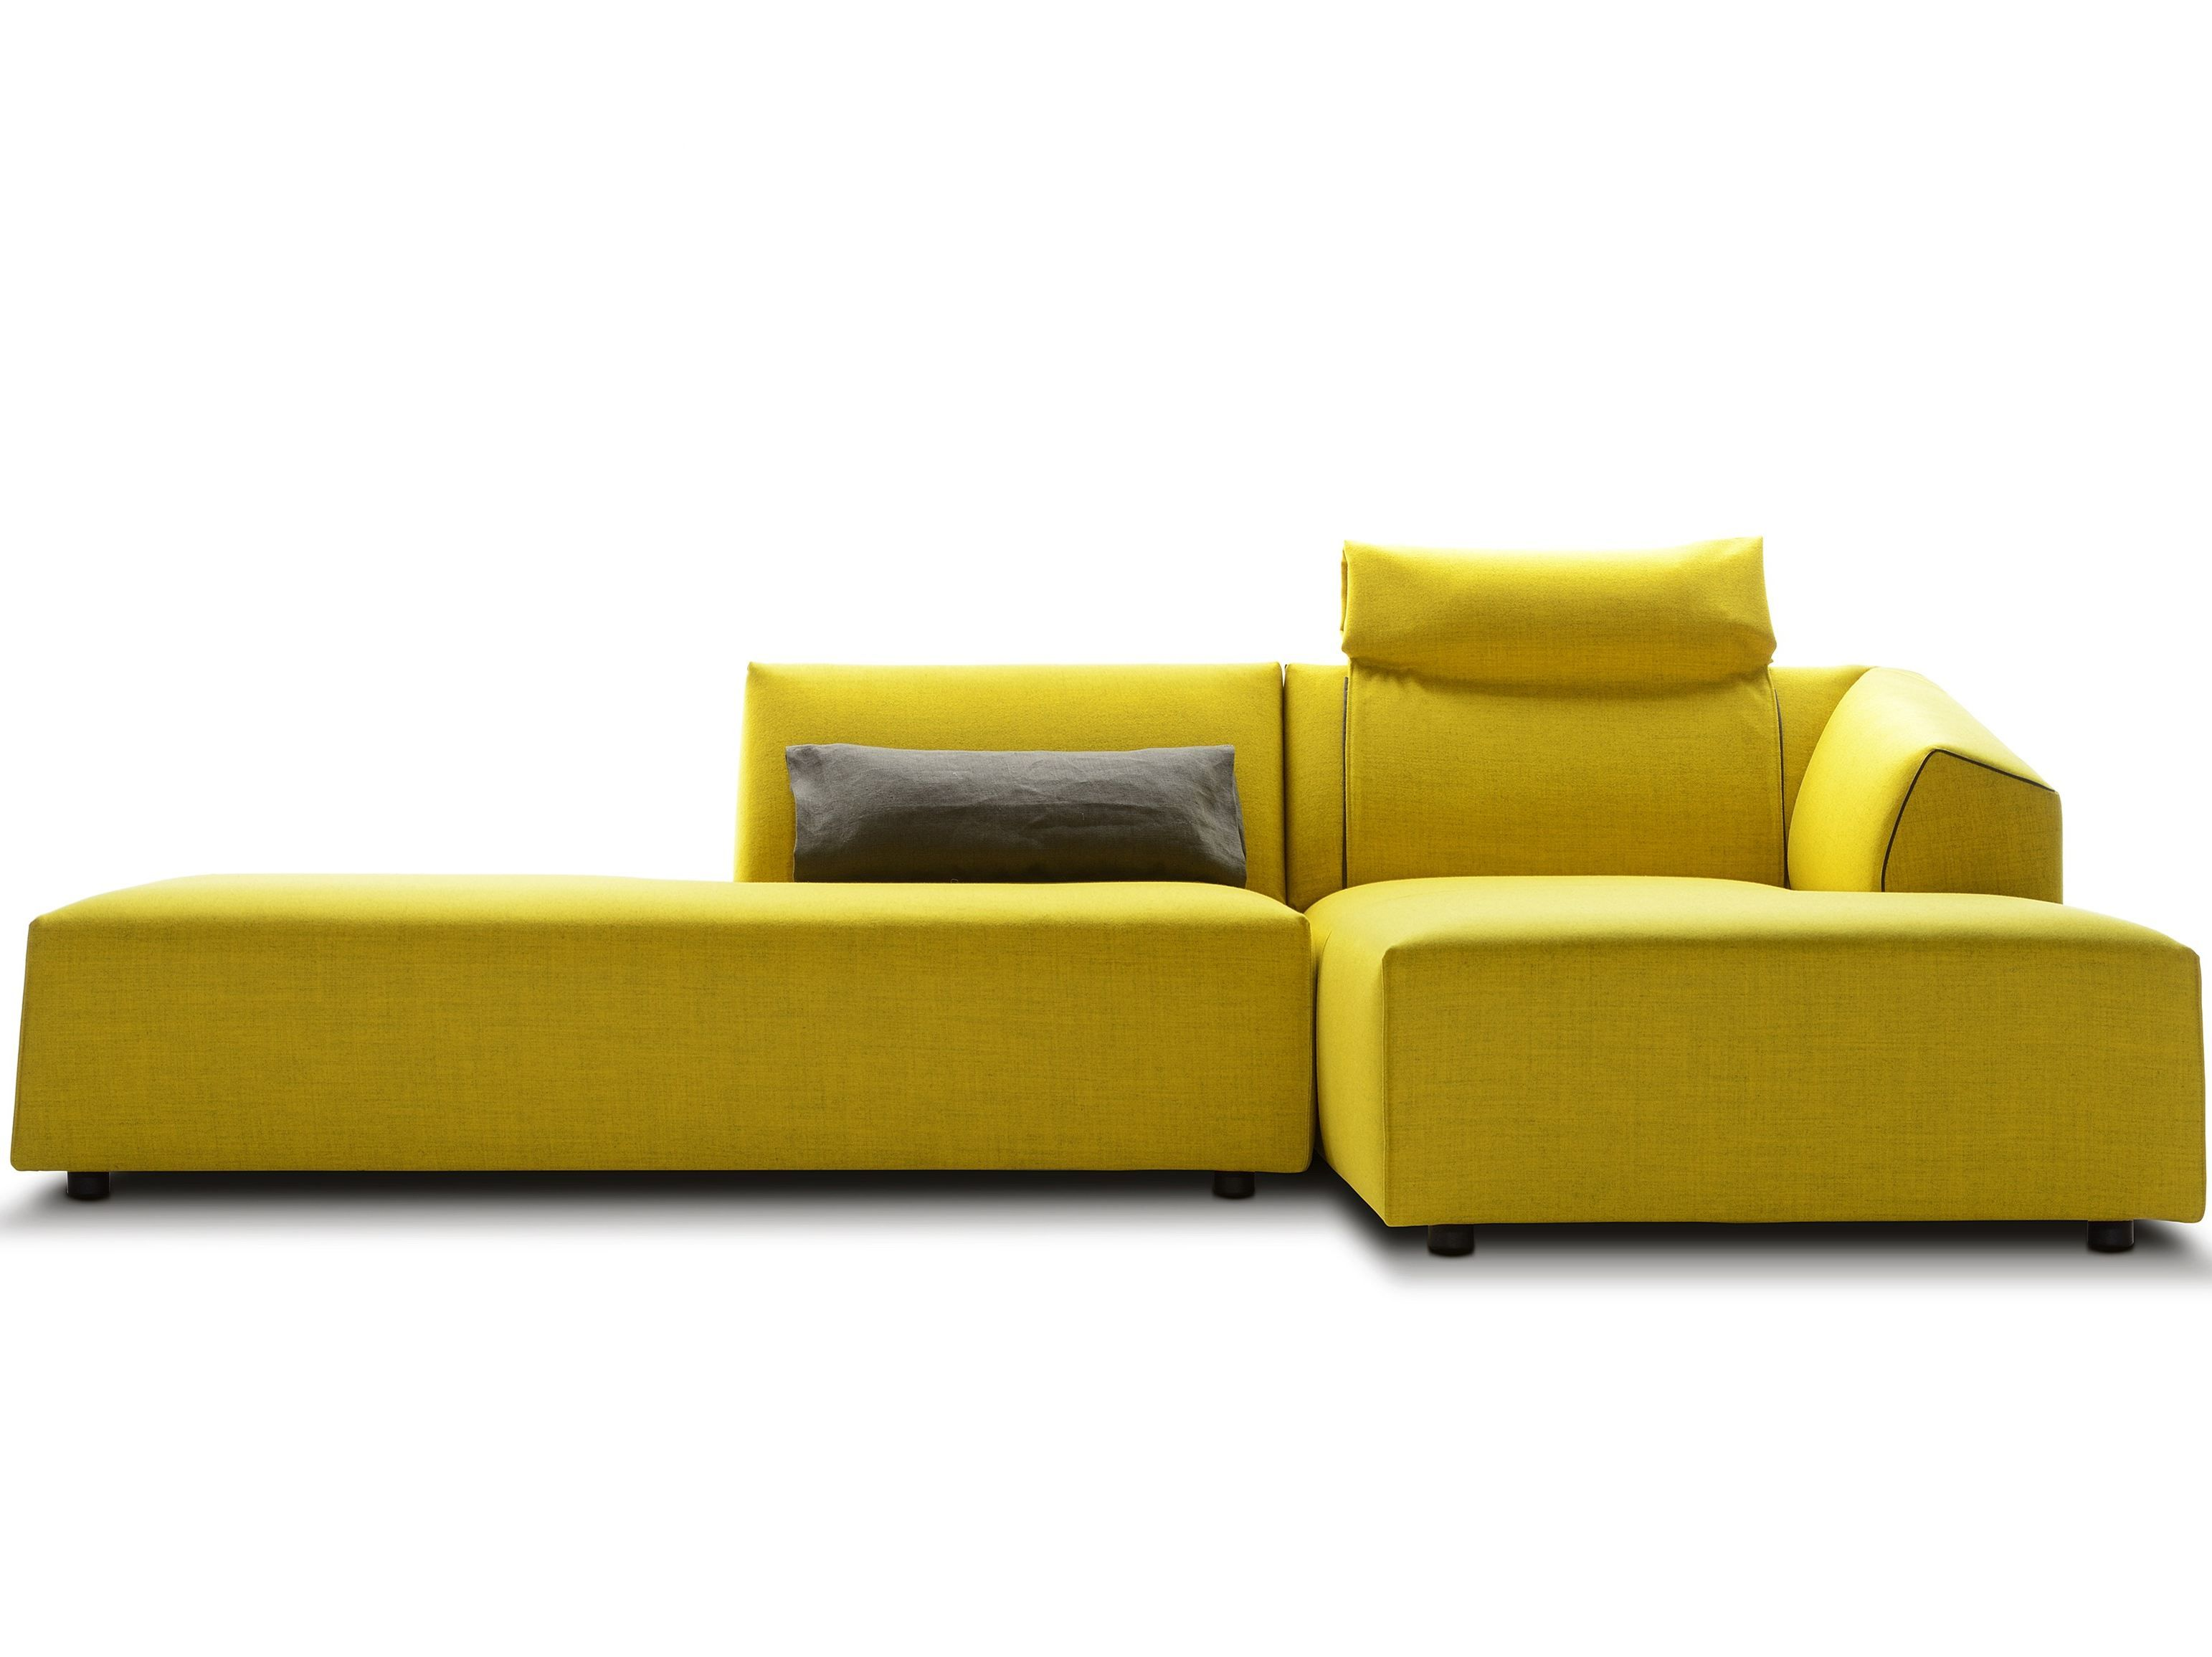 Sofa removable free spirited and flexible d 233 sir 233 e - Thea Sofa With Chaise Longue By Mdf Italia Fabric Sofa With Chaise Longue Design